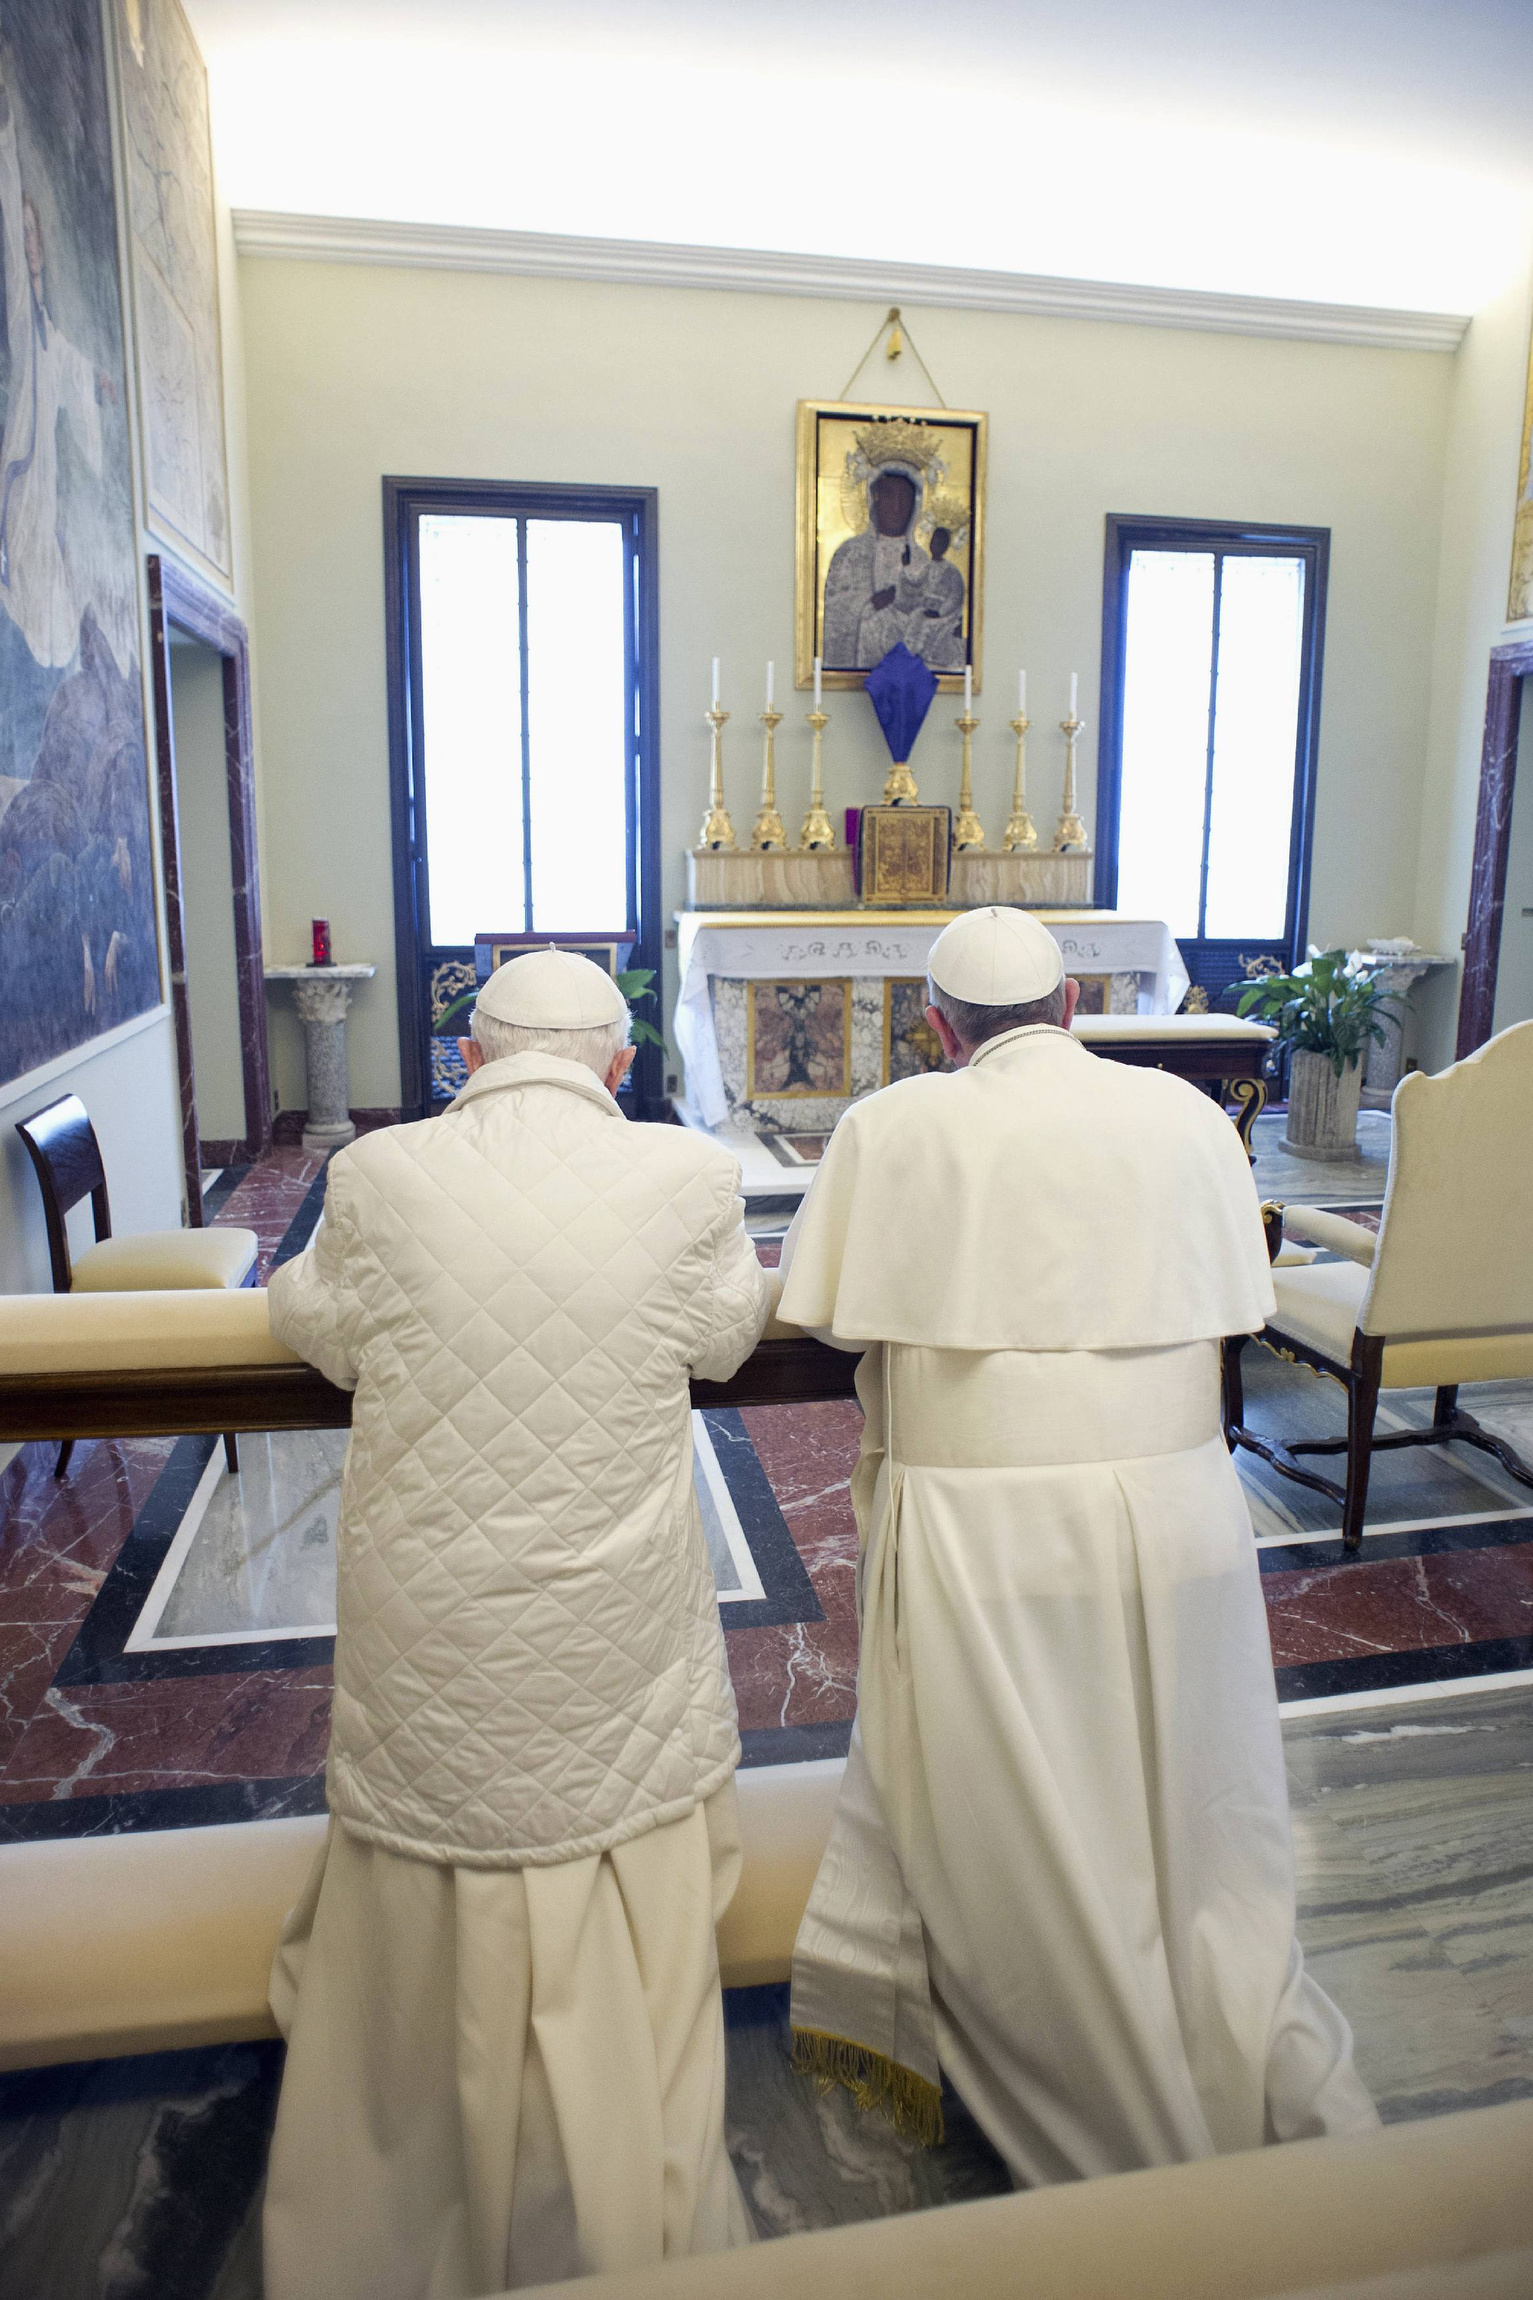 Pope Francis prays with<br /> retired<br /><br /><br /><br /> Pope Benedict XVI at papal summer residence in Castel Gandolfo